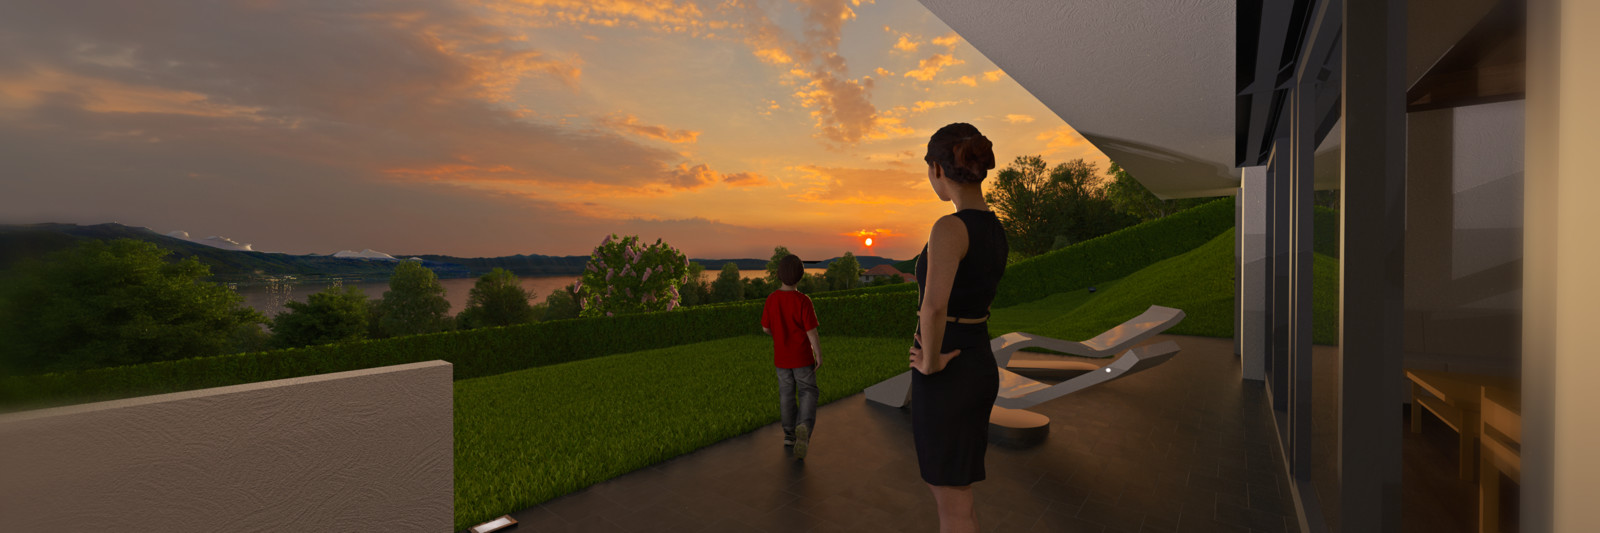 SketchUp + Thea Render  Built with SU 2014/15, Rendered with SU 2016 with Thea Render  Mom and kid to West 01 C Ingrid